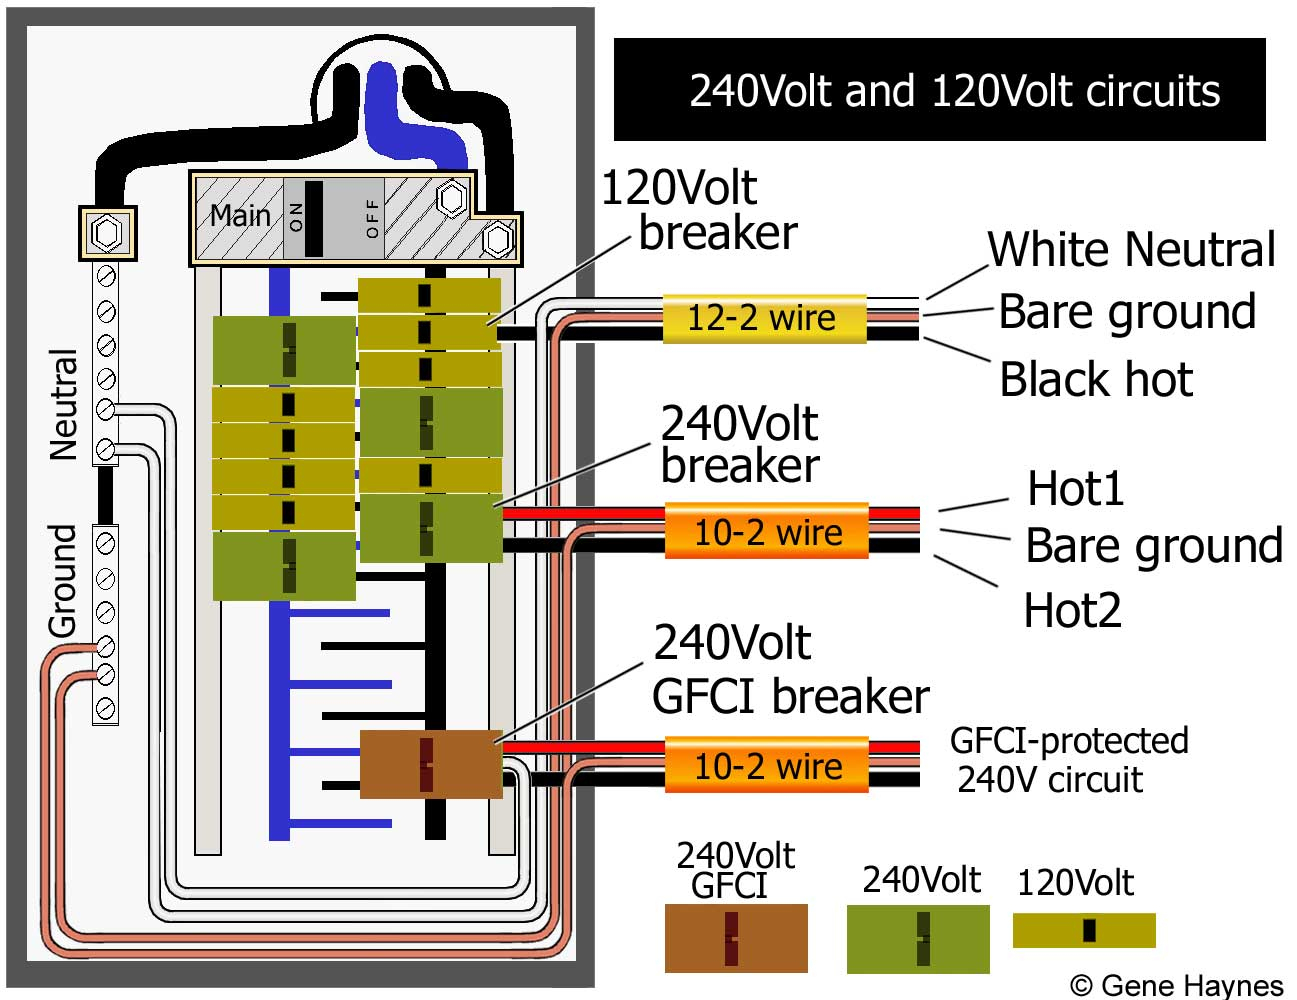 120 Volt Gfci Breaker Wiring Diagram | Wiring Diagram - 2 Pole Gfci Breaker Wiring Diagram